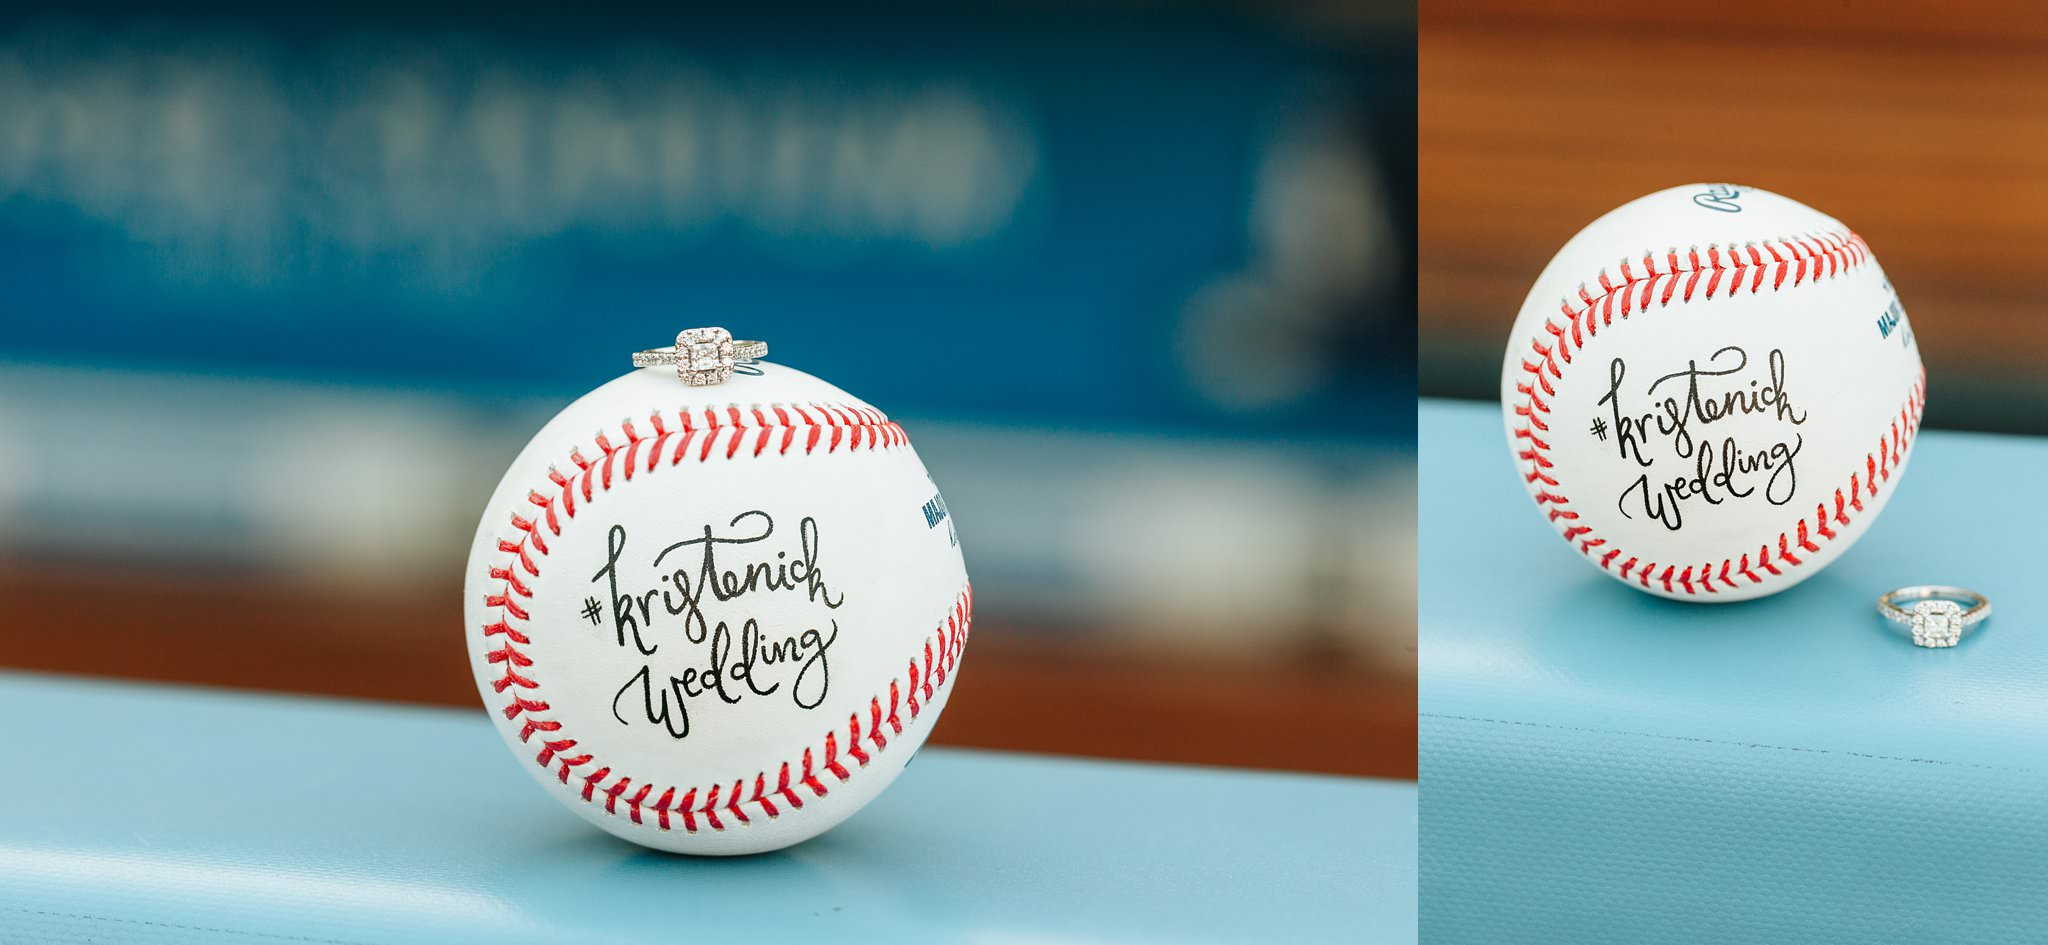 Engagement Ring and Baseball at Dodger Stadium - LA - http://brittneyhannonphotography.com